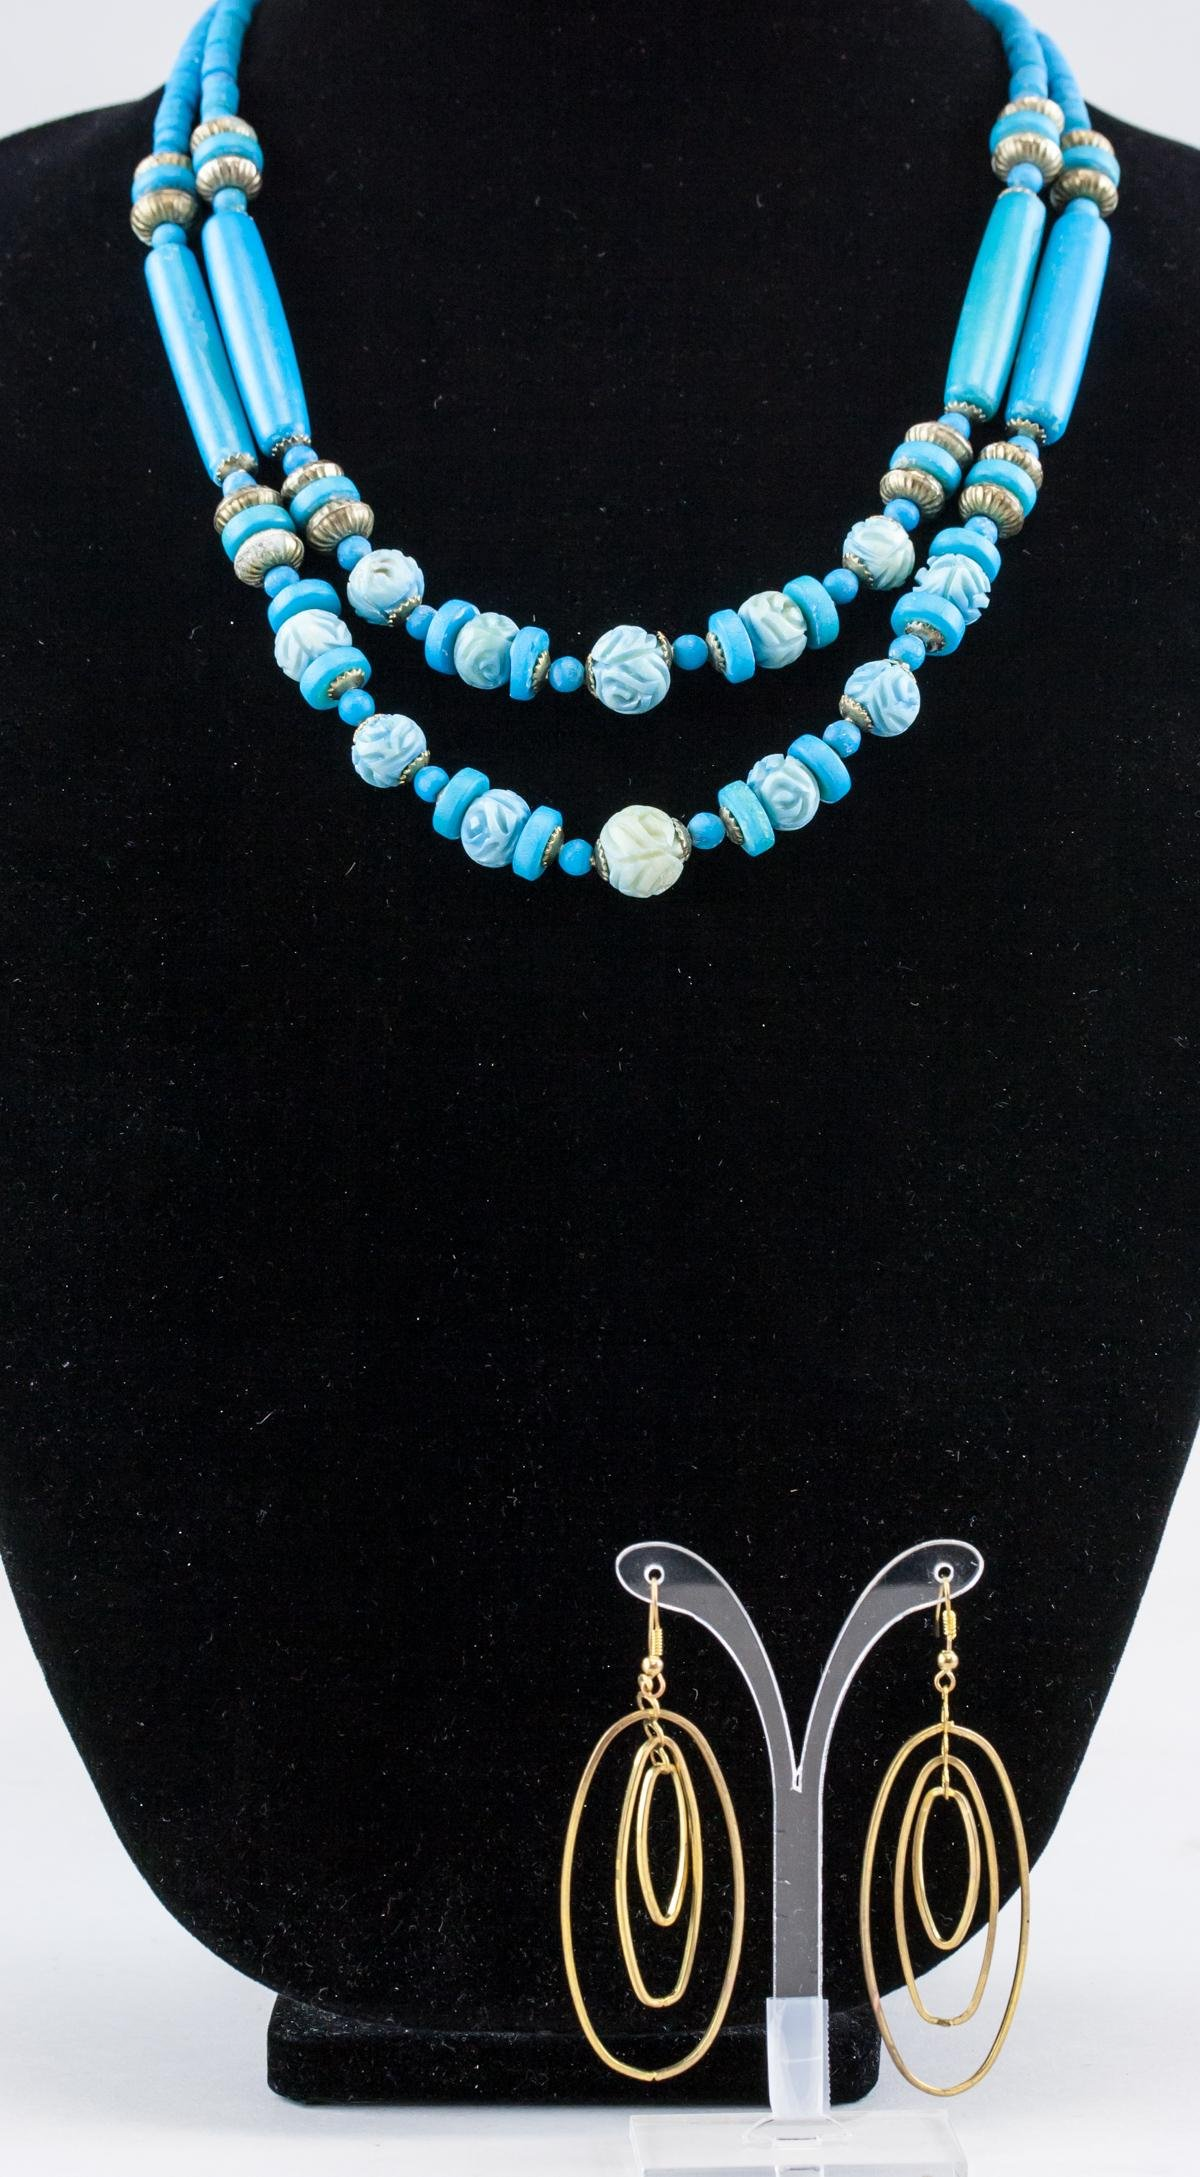 Chinese Copper Earrings & Turquoise Necklace